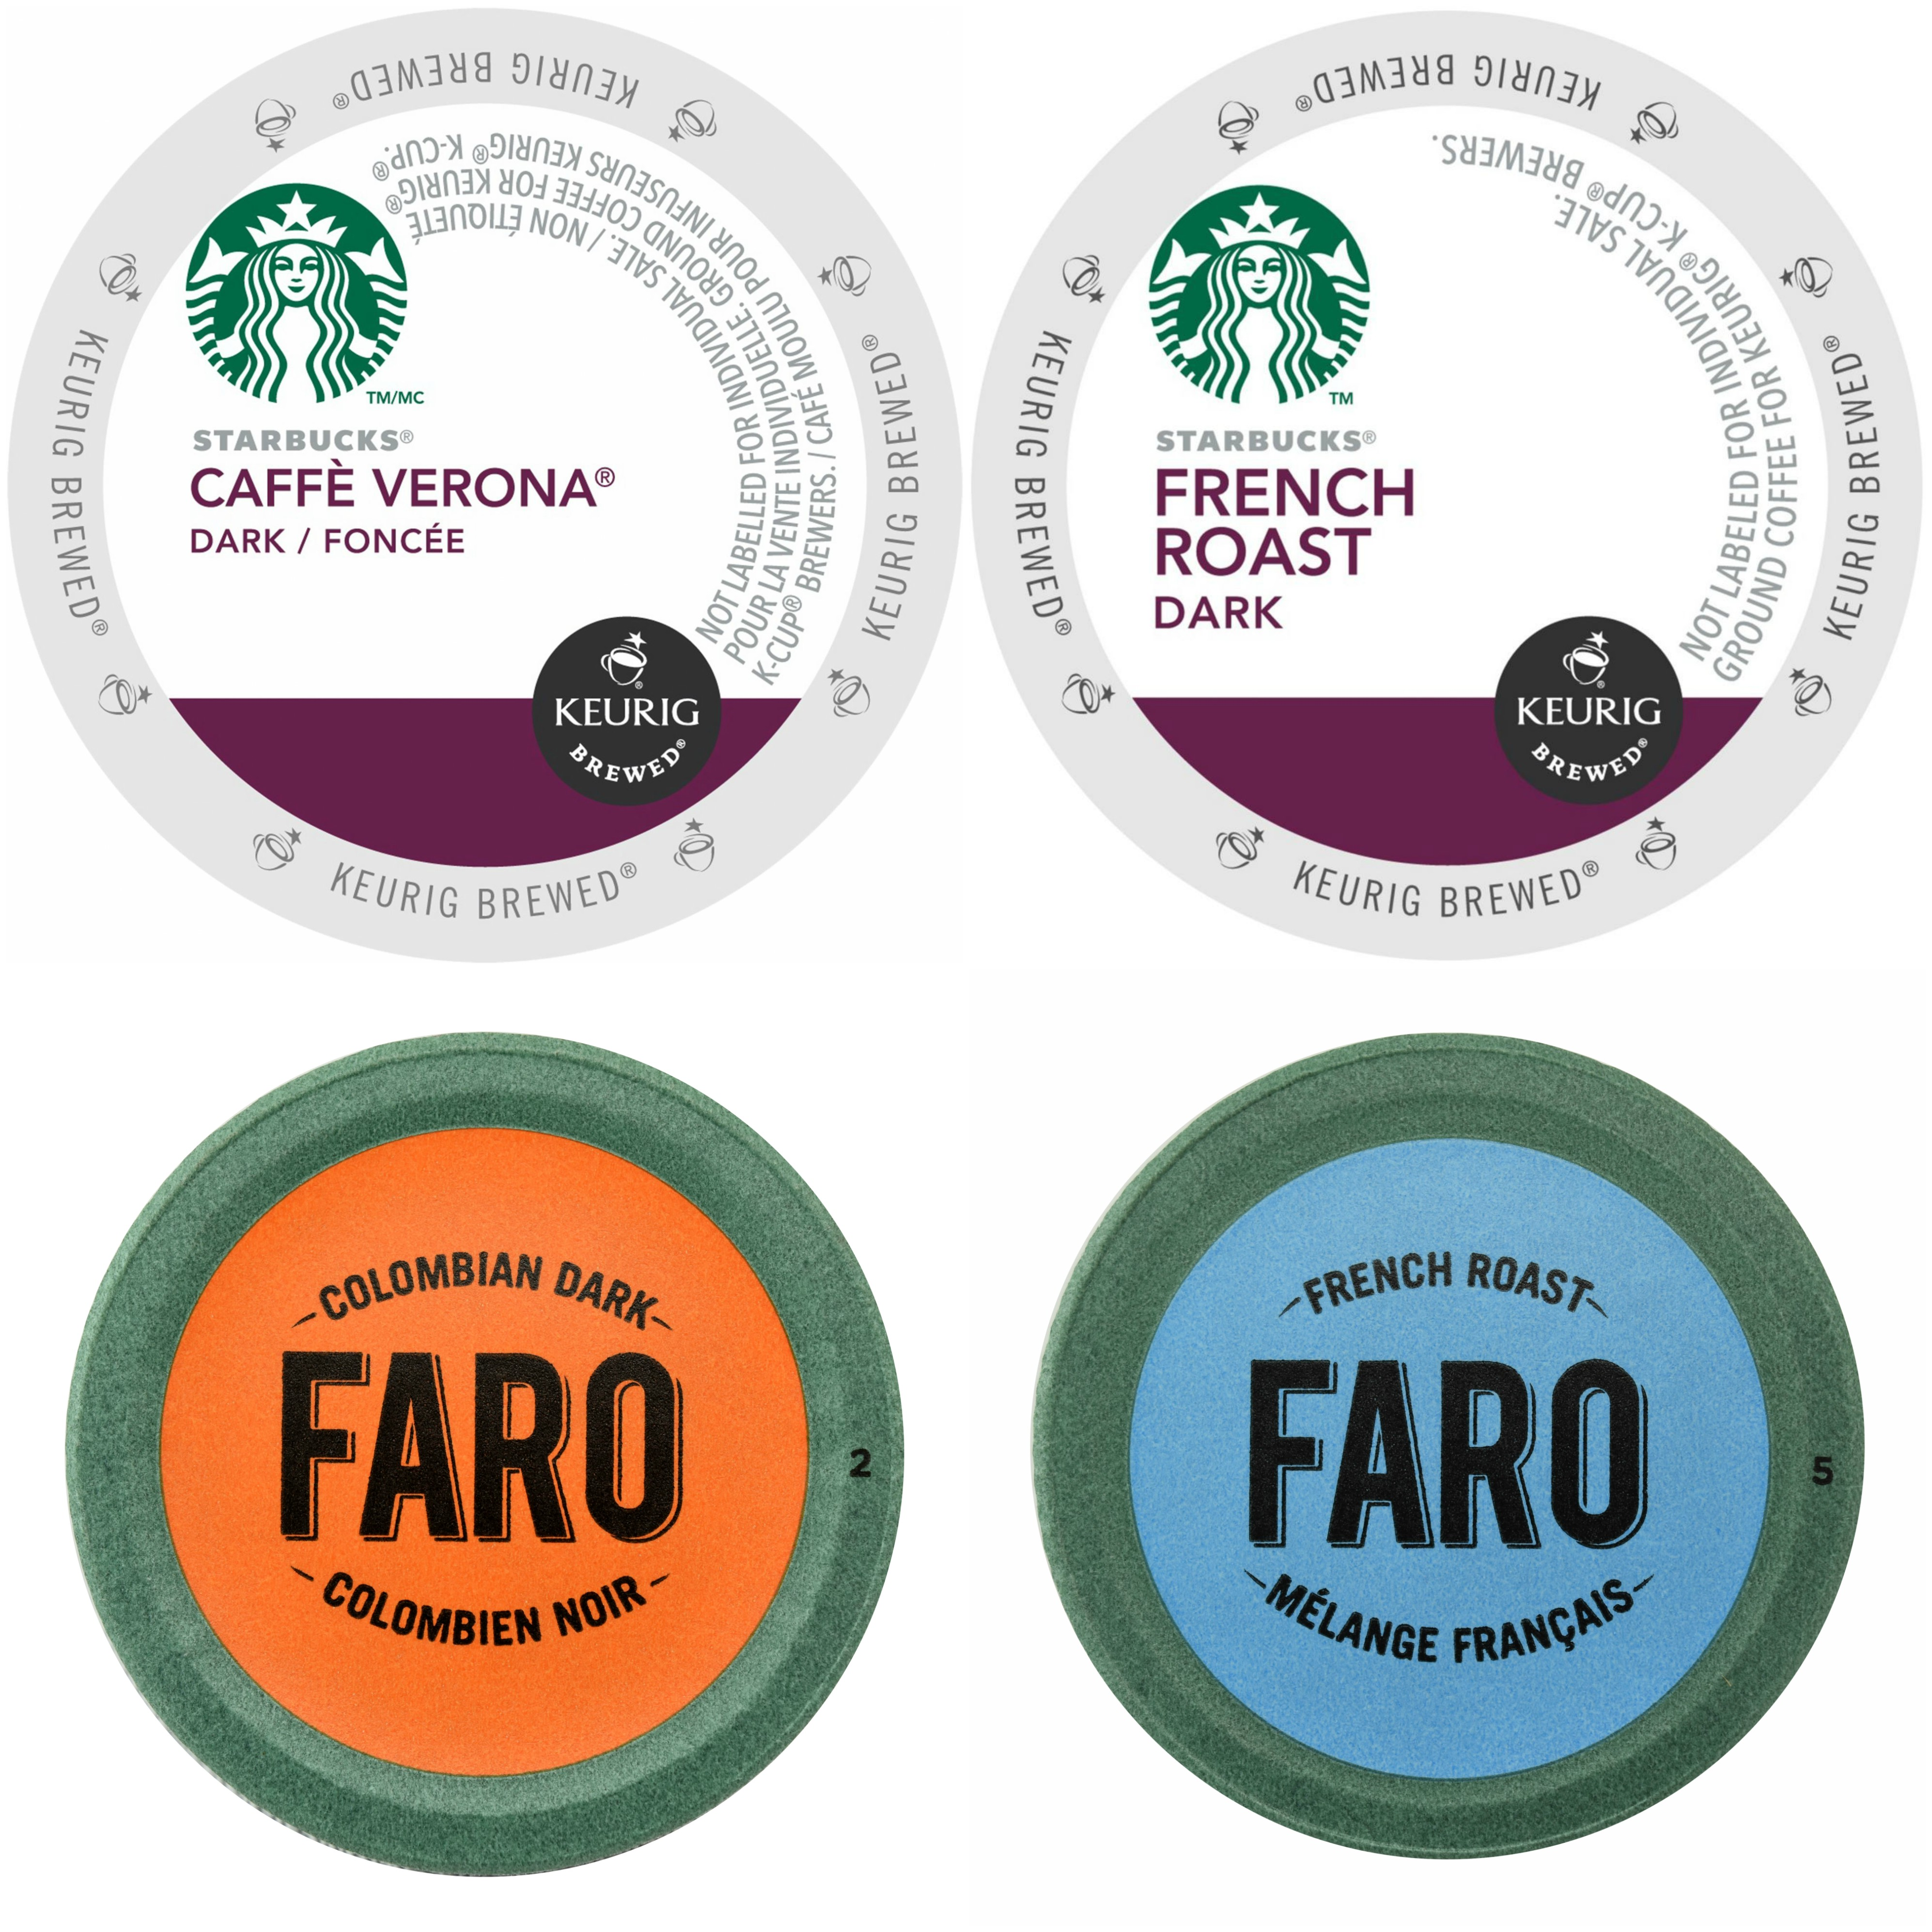 Starbucks Caffe Verona & French Roast Coffee, Faro Colombian Dark & French Roast Coffee Single Cups for Keurig Brewers, 96 Count